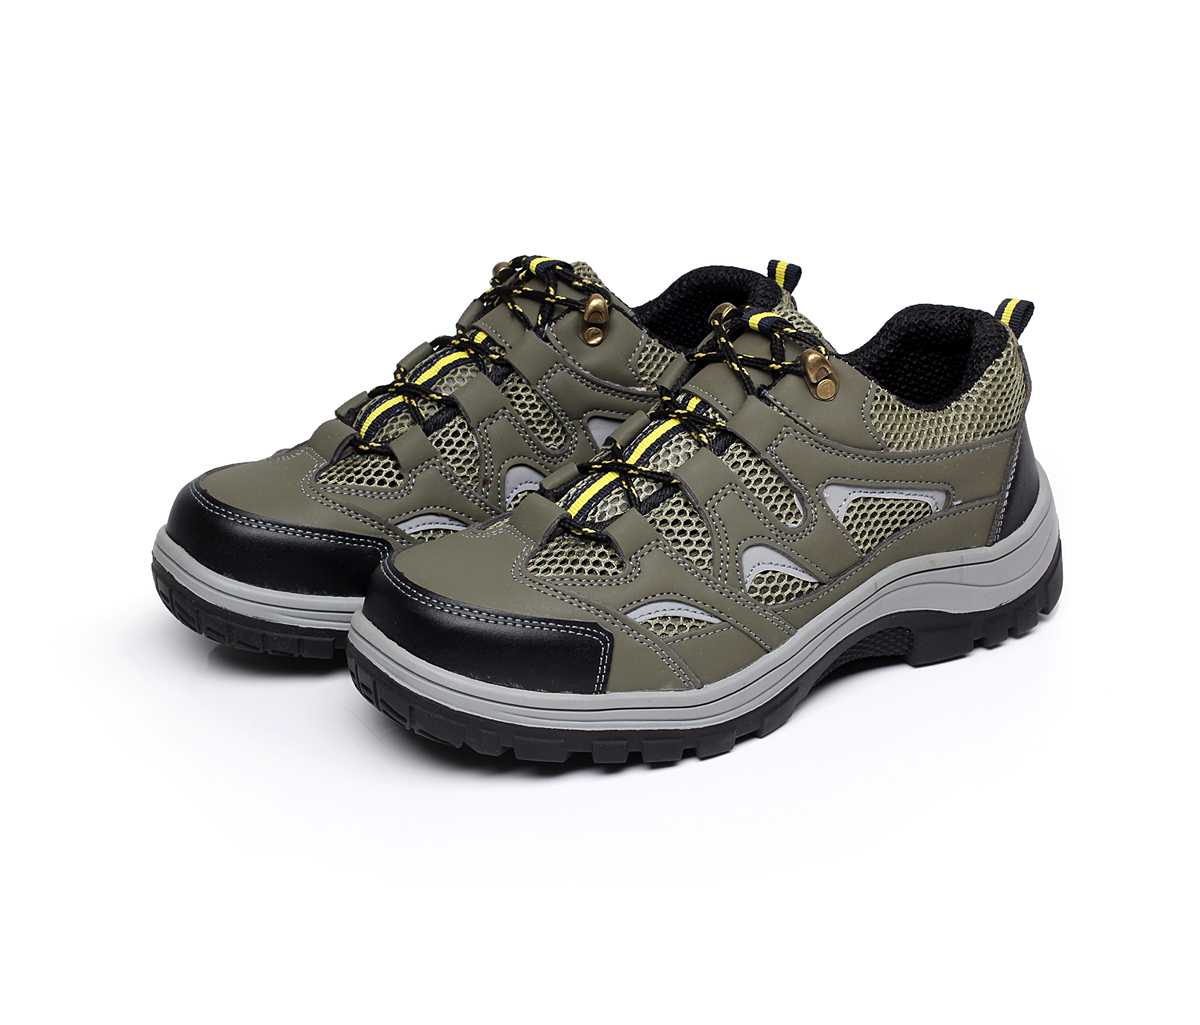 safety shoes work boots embossed leather pu outsole